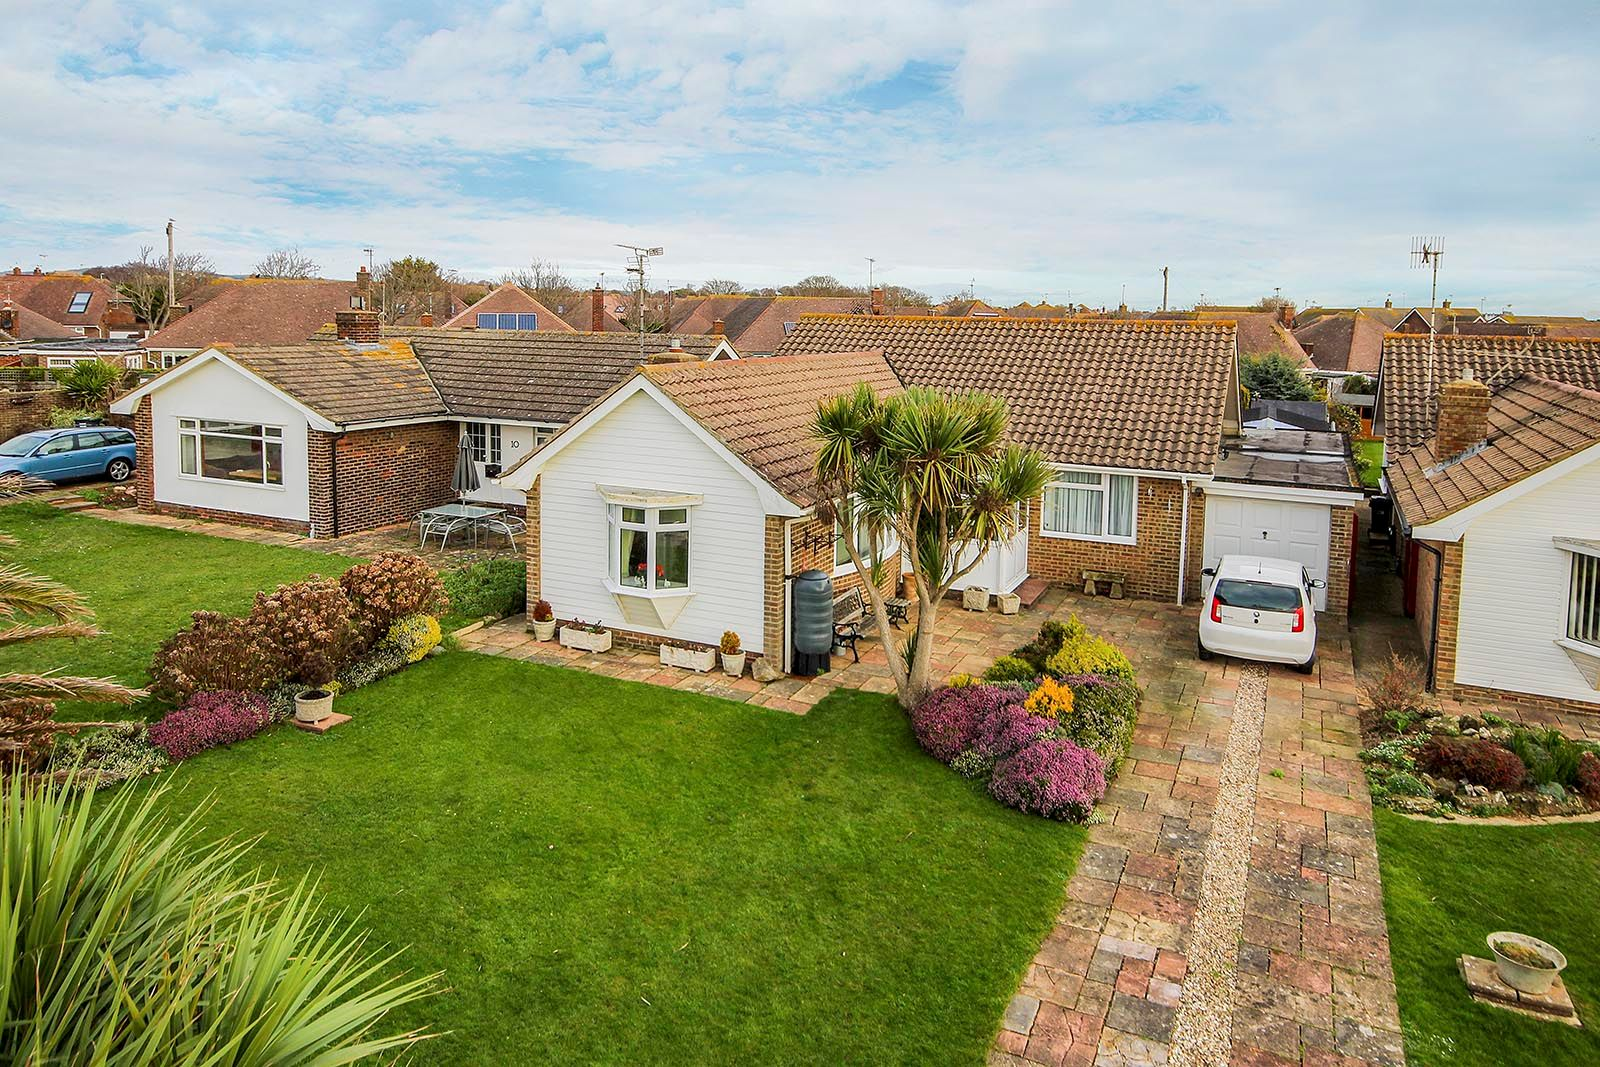 2 bed bungalow for sale in Banstead Close COMP AUG 2019 1